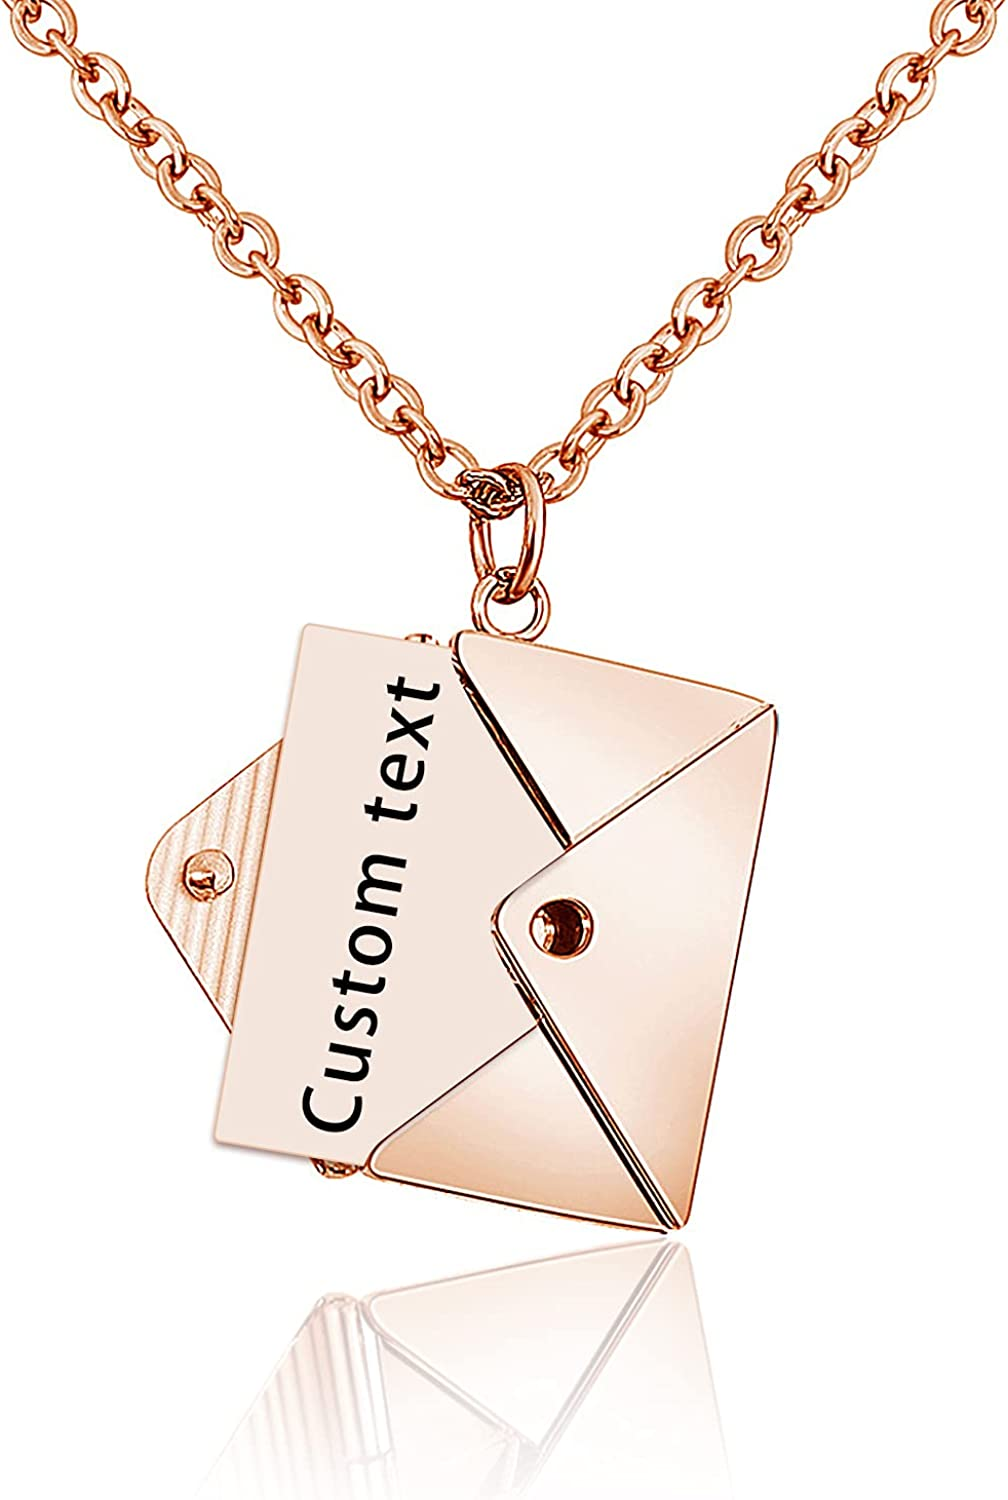 Custom Personalized Message Envelope Locket Necklace Pendant Jewelry Gift for Women Girls Lover